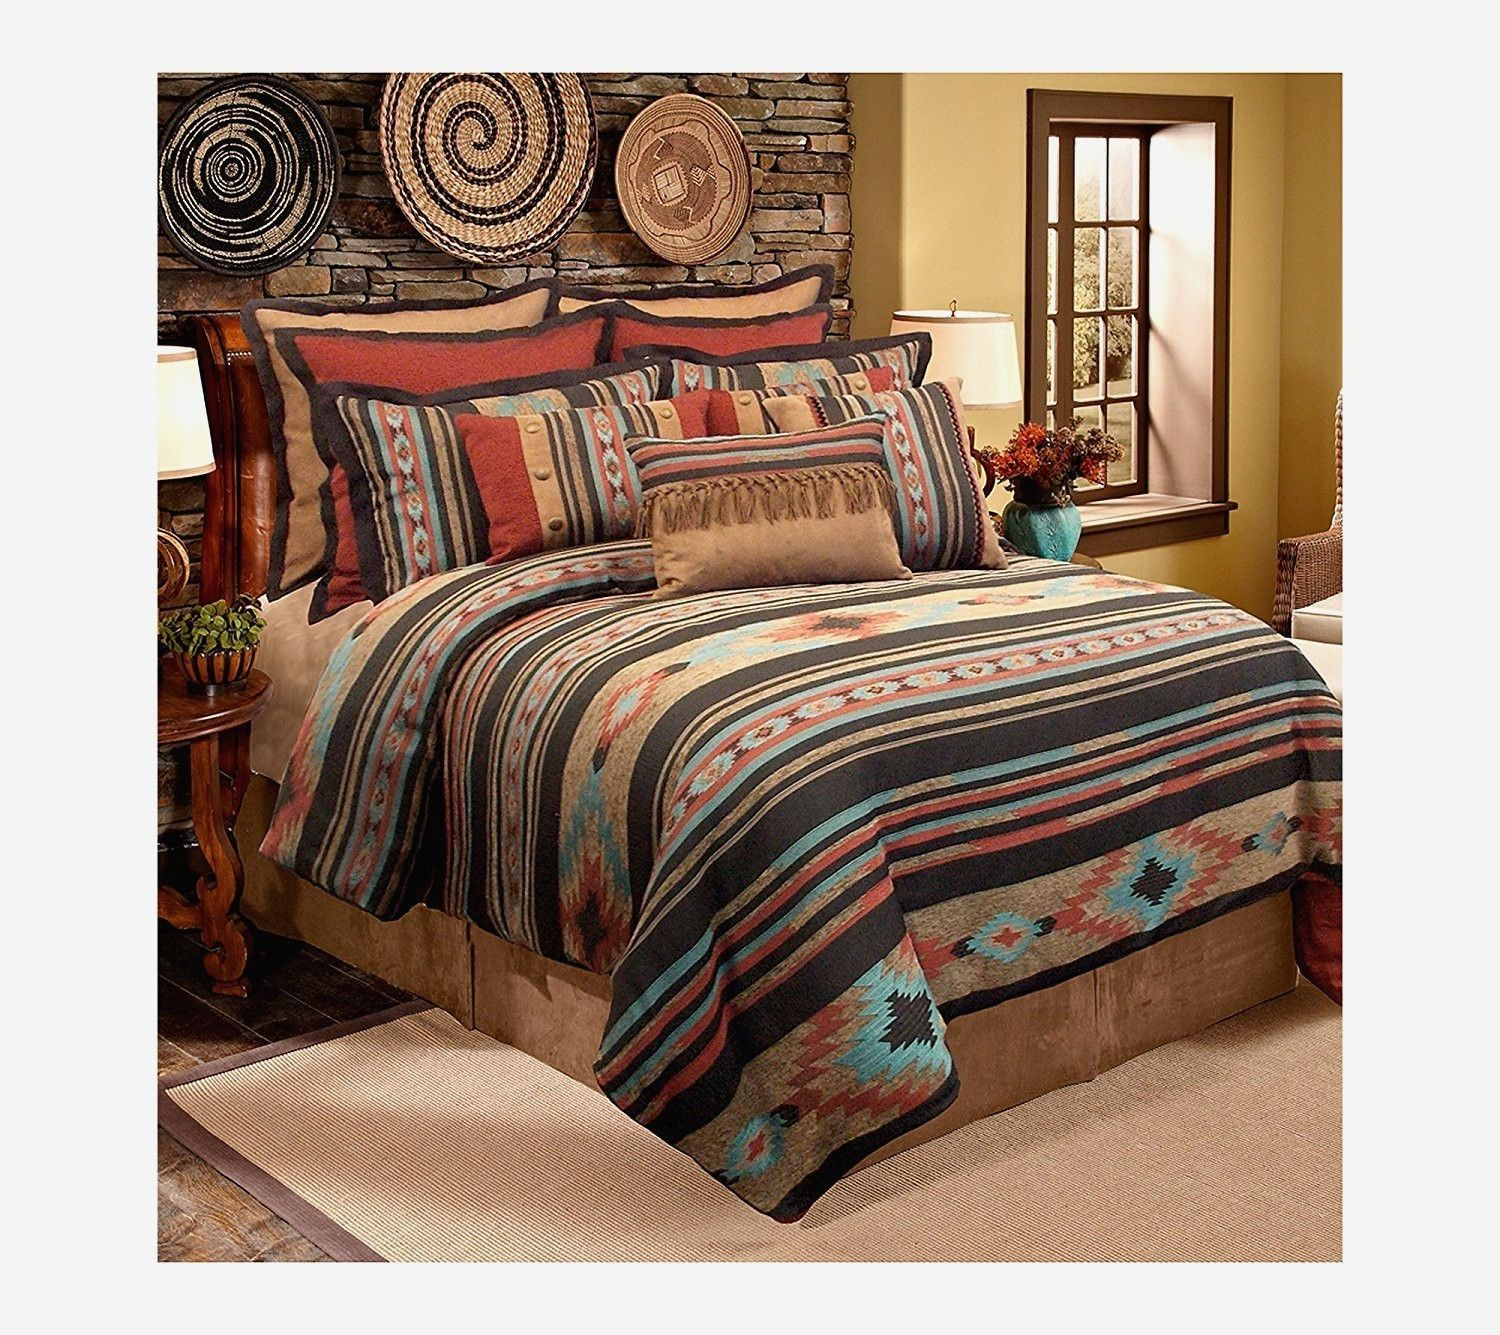 28 Perfect Native American Bedroom Decor With Images